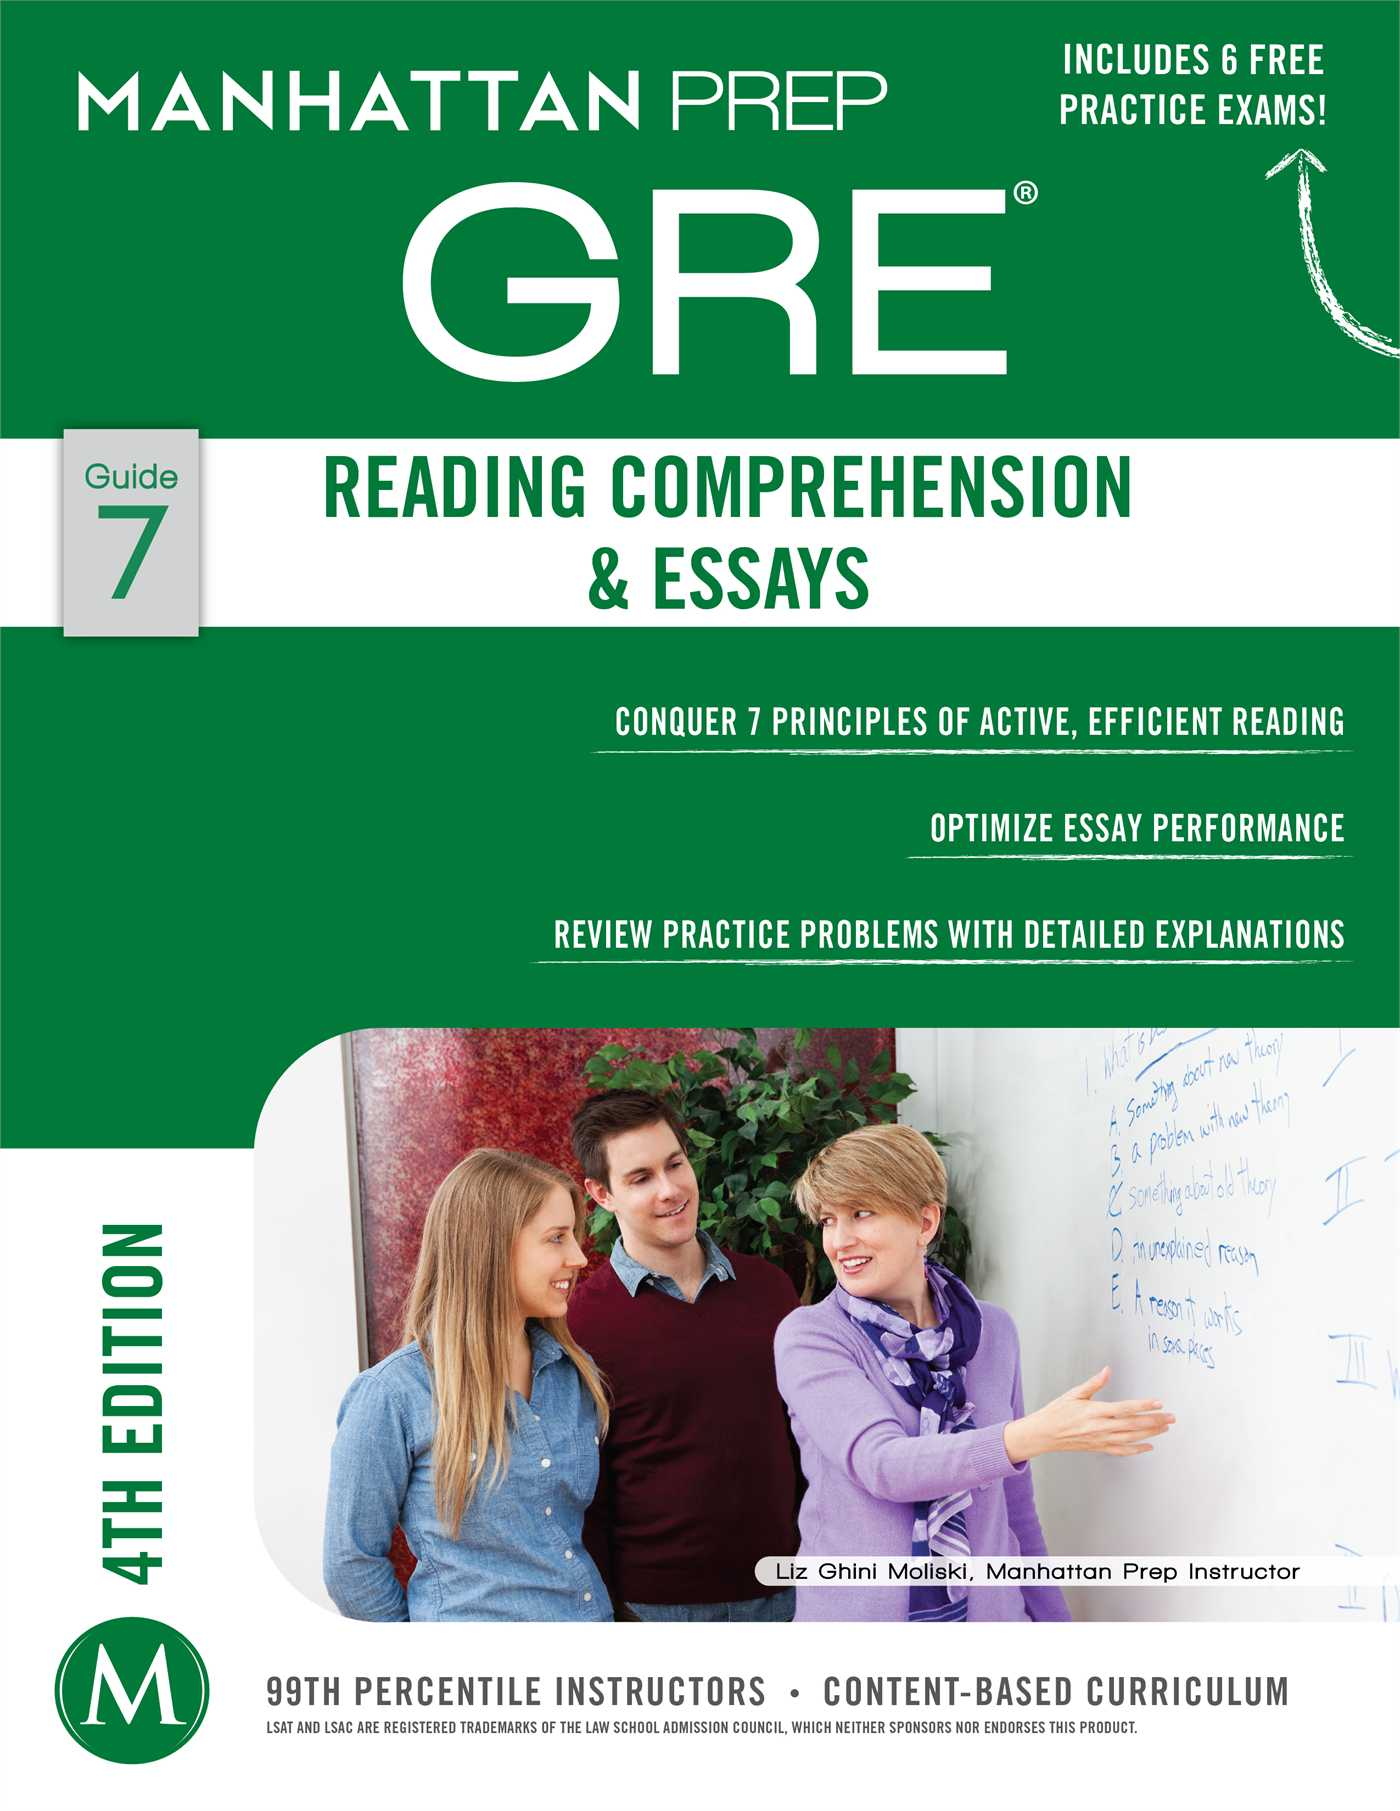 gre reading comprehension essays book by manhattan prep cvr9781937707880 9781937707880 hr gre reading comprehension essays